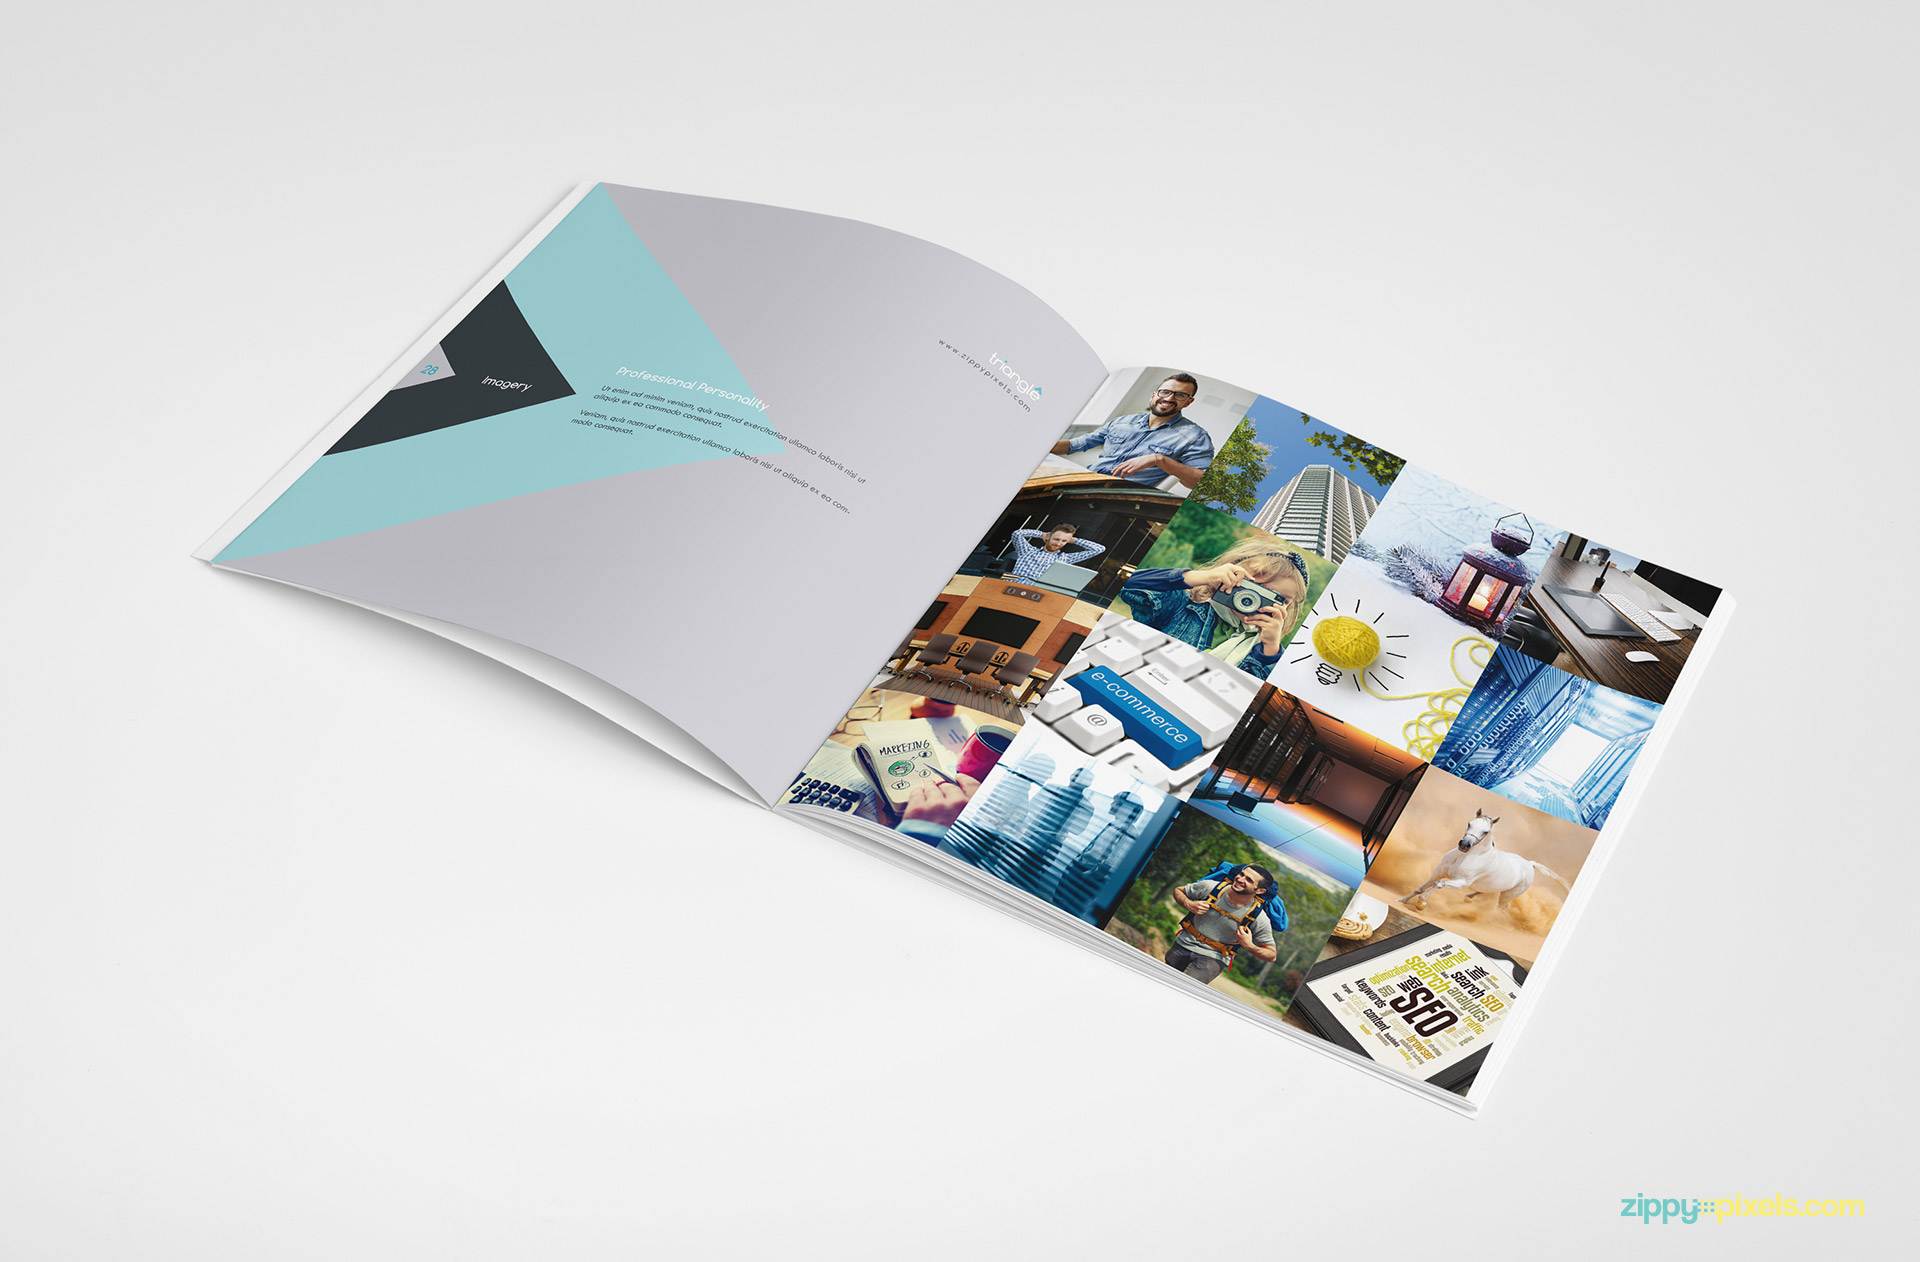 17-brand-book-11-imagery